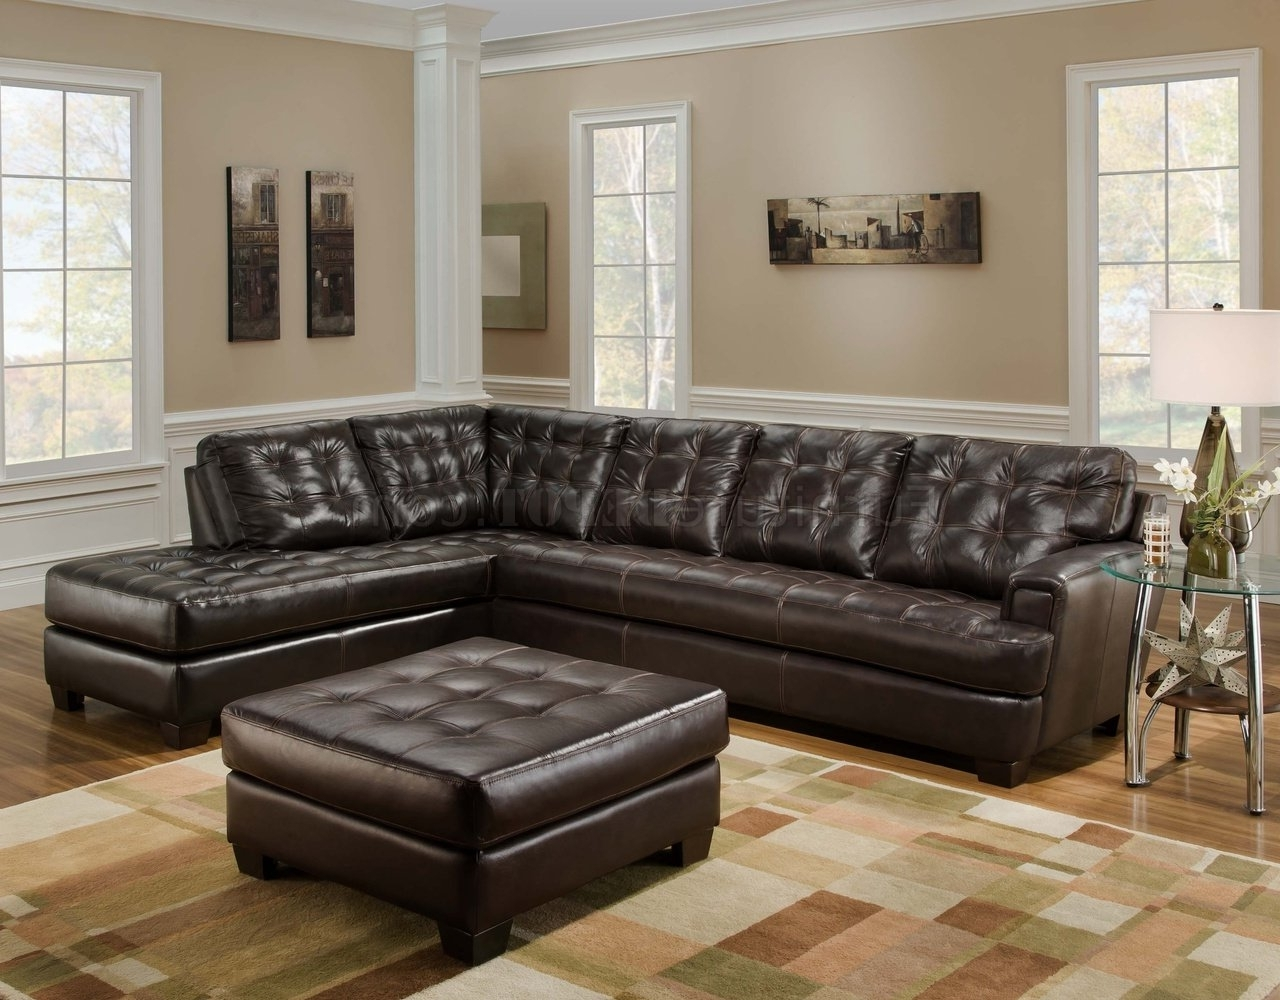 Favorite Brown Leather Sectionals With Chaise With Regard To Chicory Brown Tufted Top Grain Leather Modern Sectional Sofa (View 5 of 15)